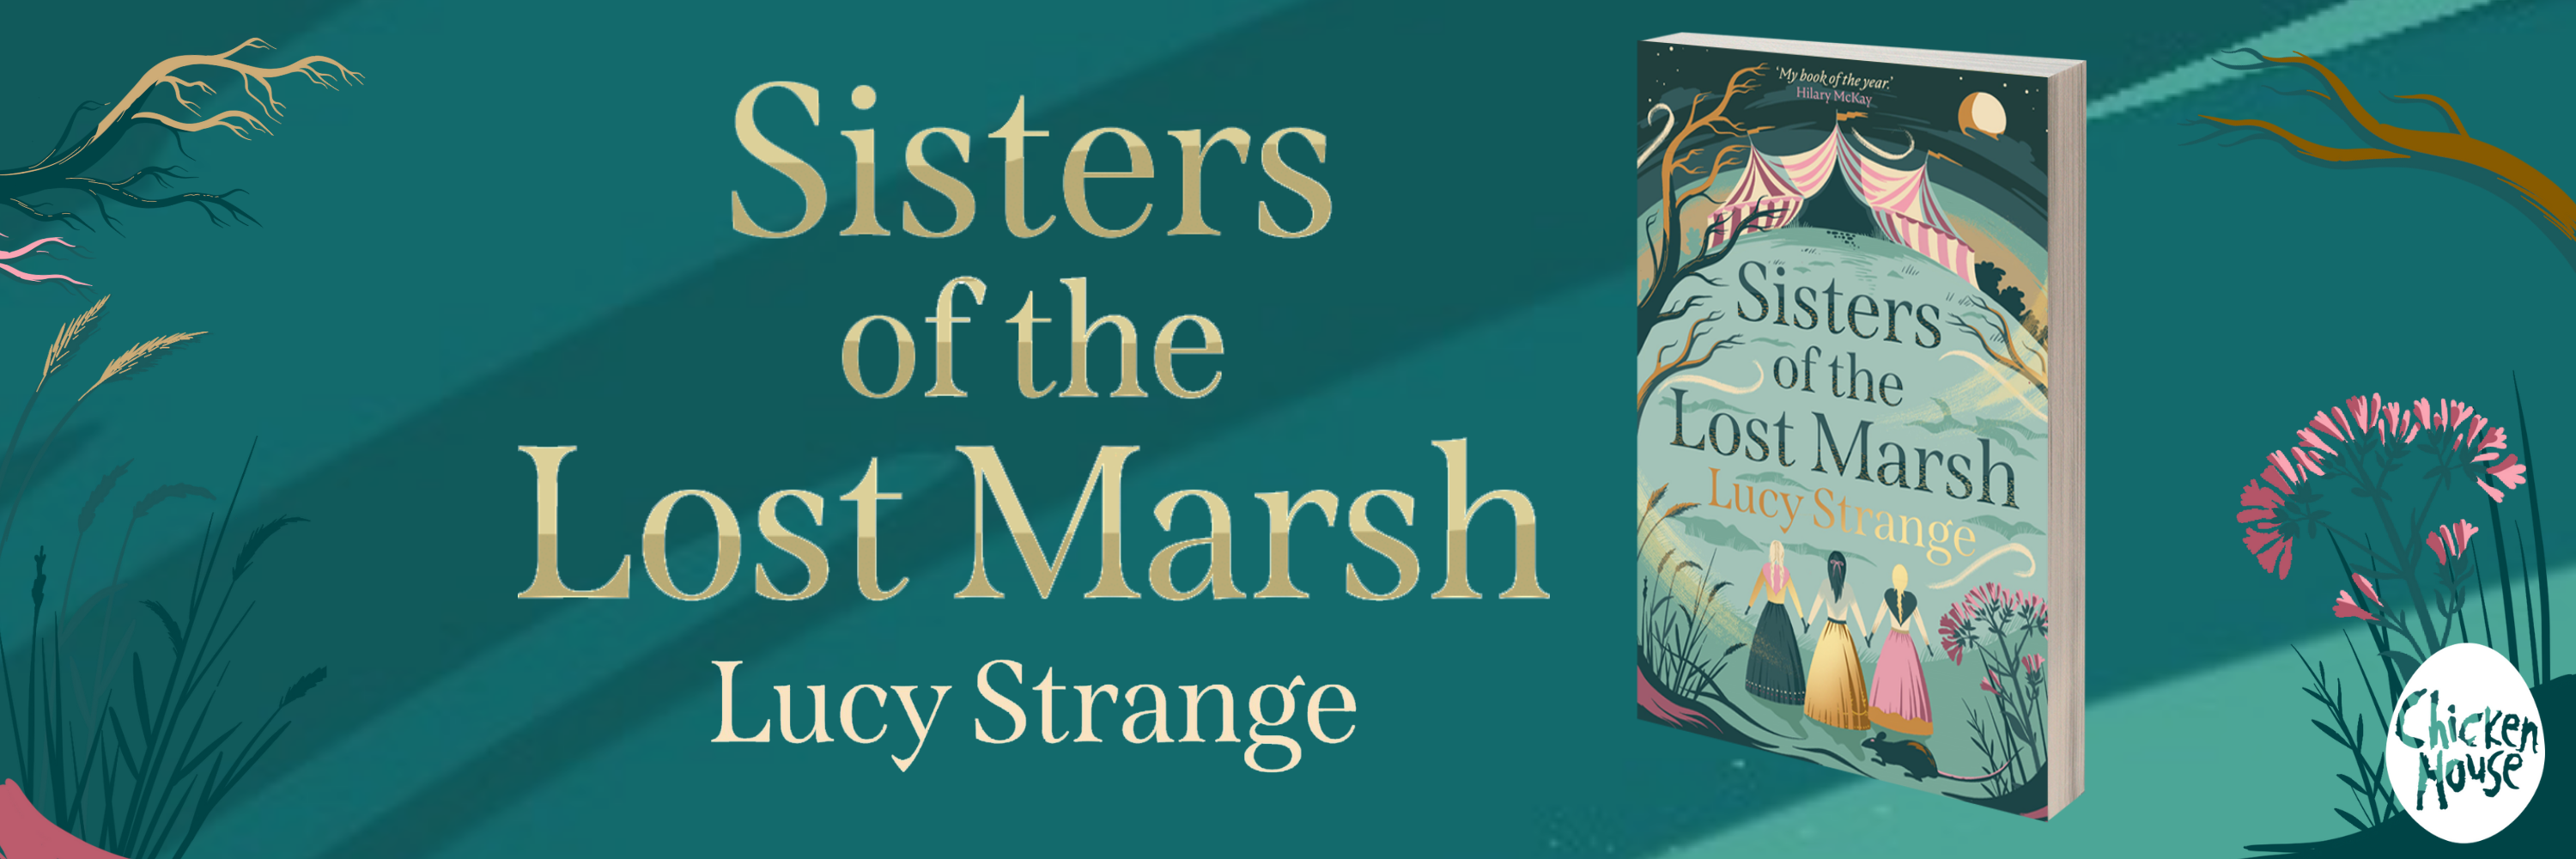 SISTERS OF THE LOST MARSH by Lucy Strange